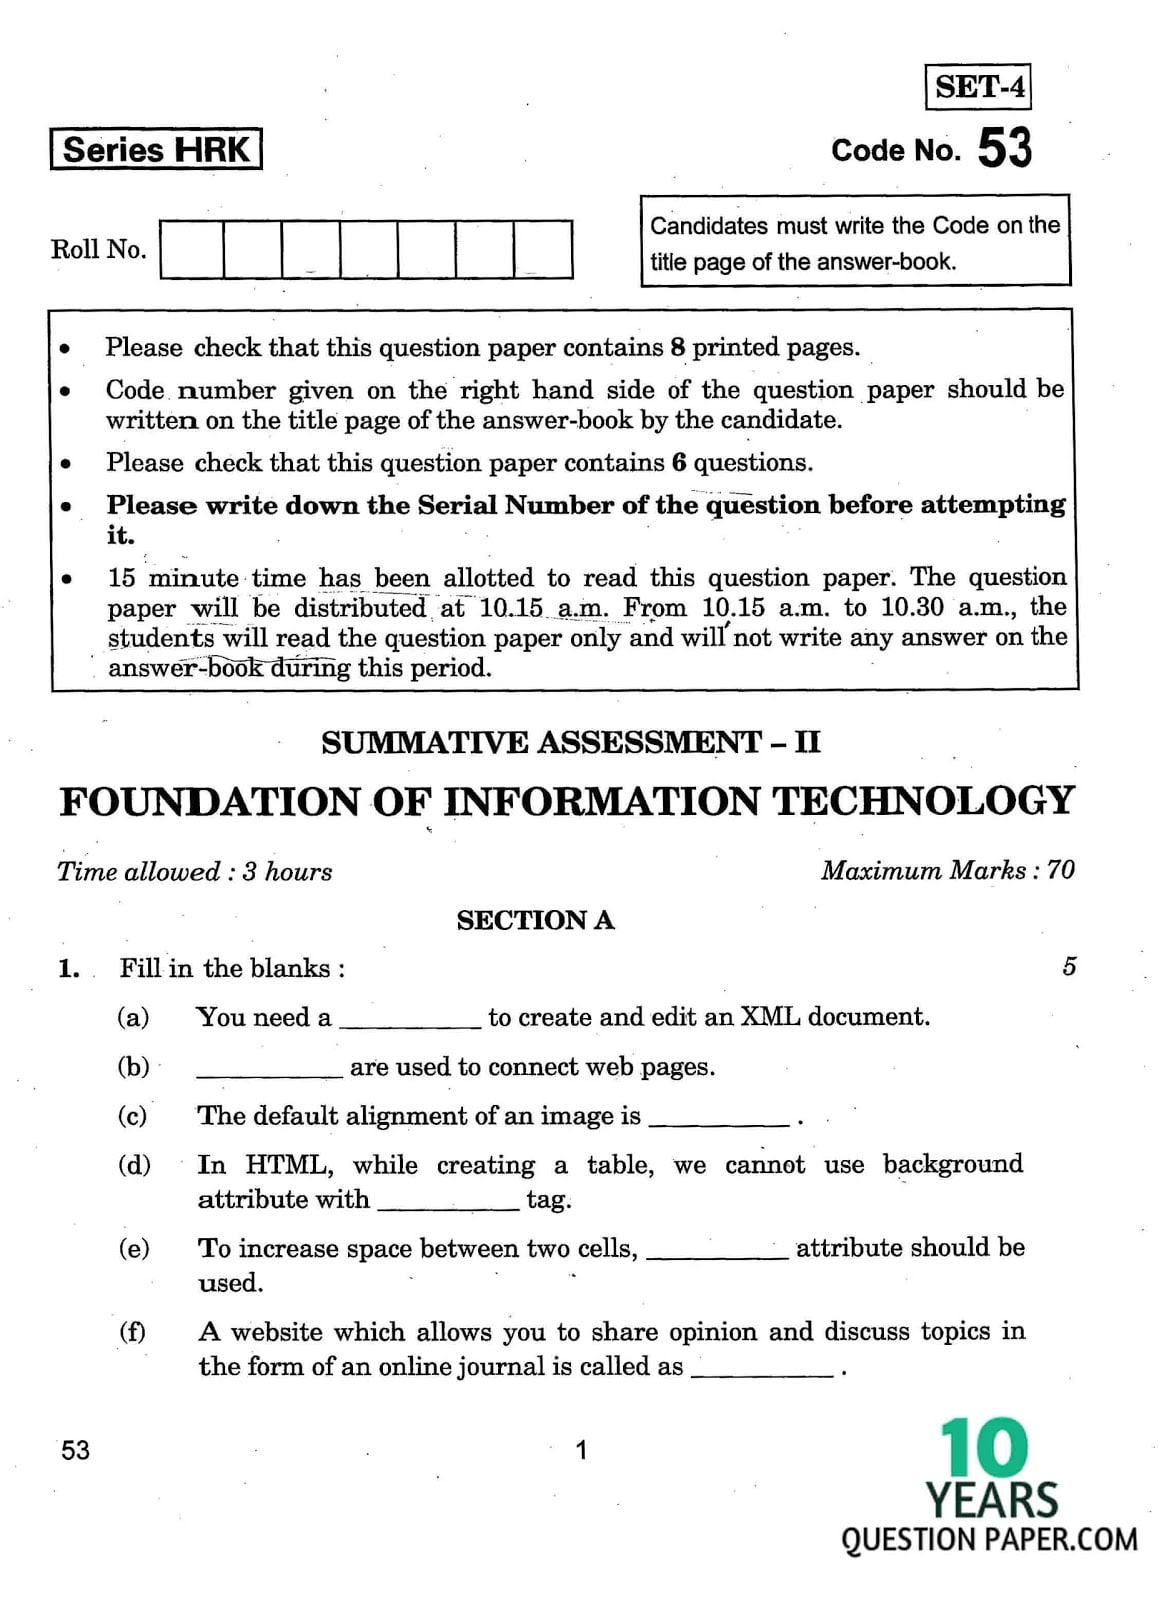 CBSE Class 10 Foundation of Information Technology 2017 Question Paper